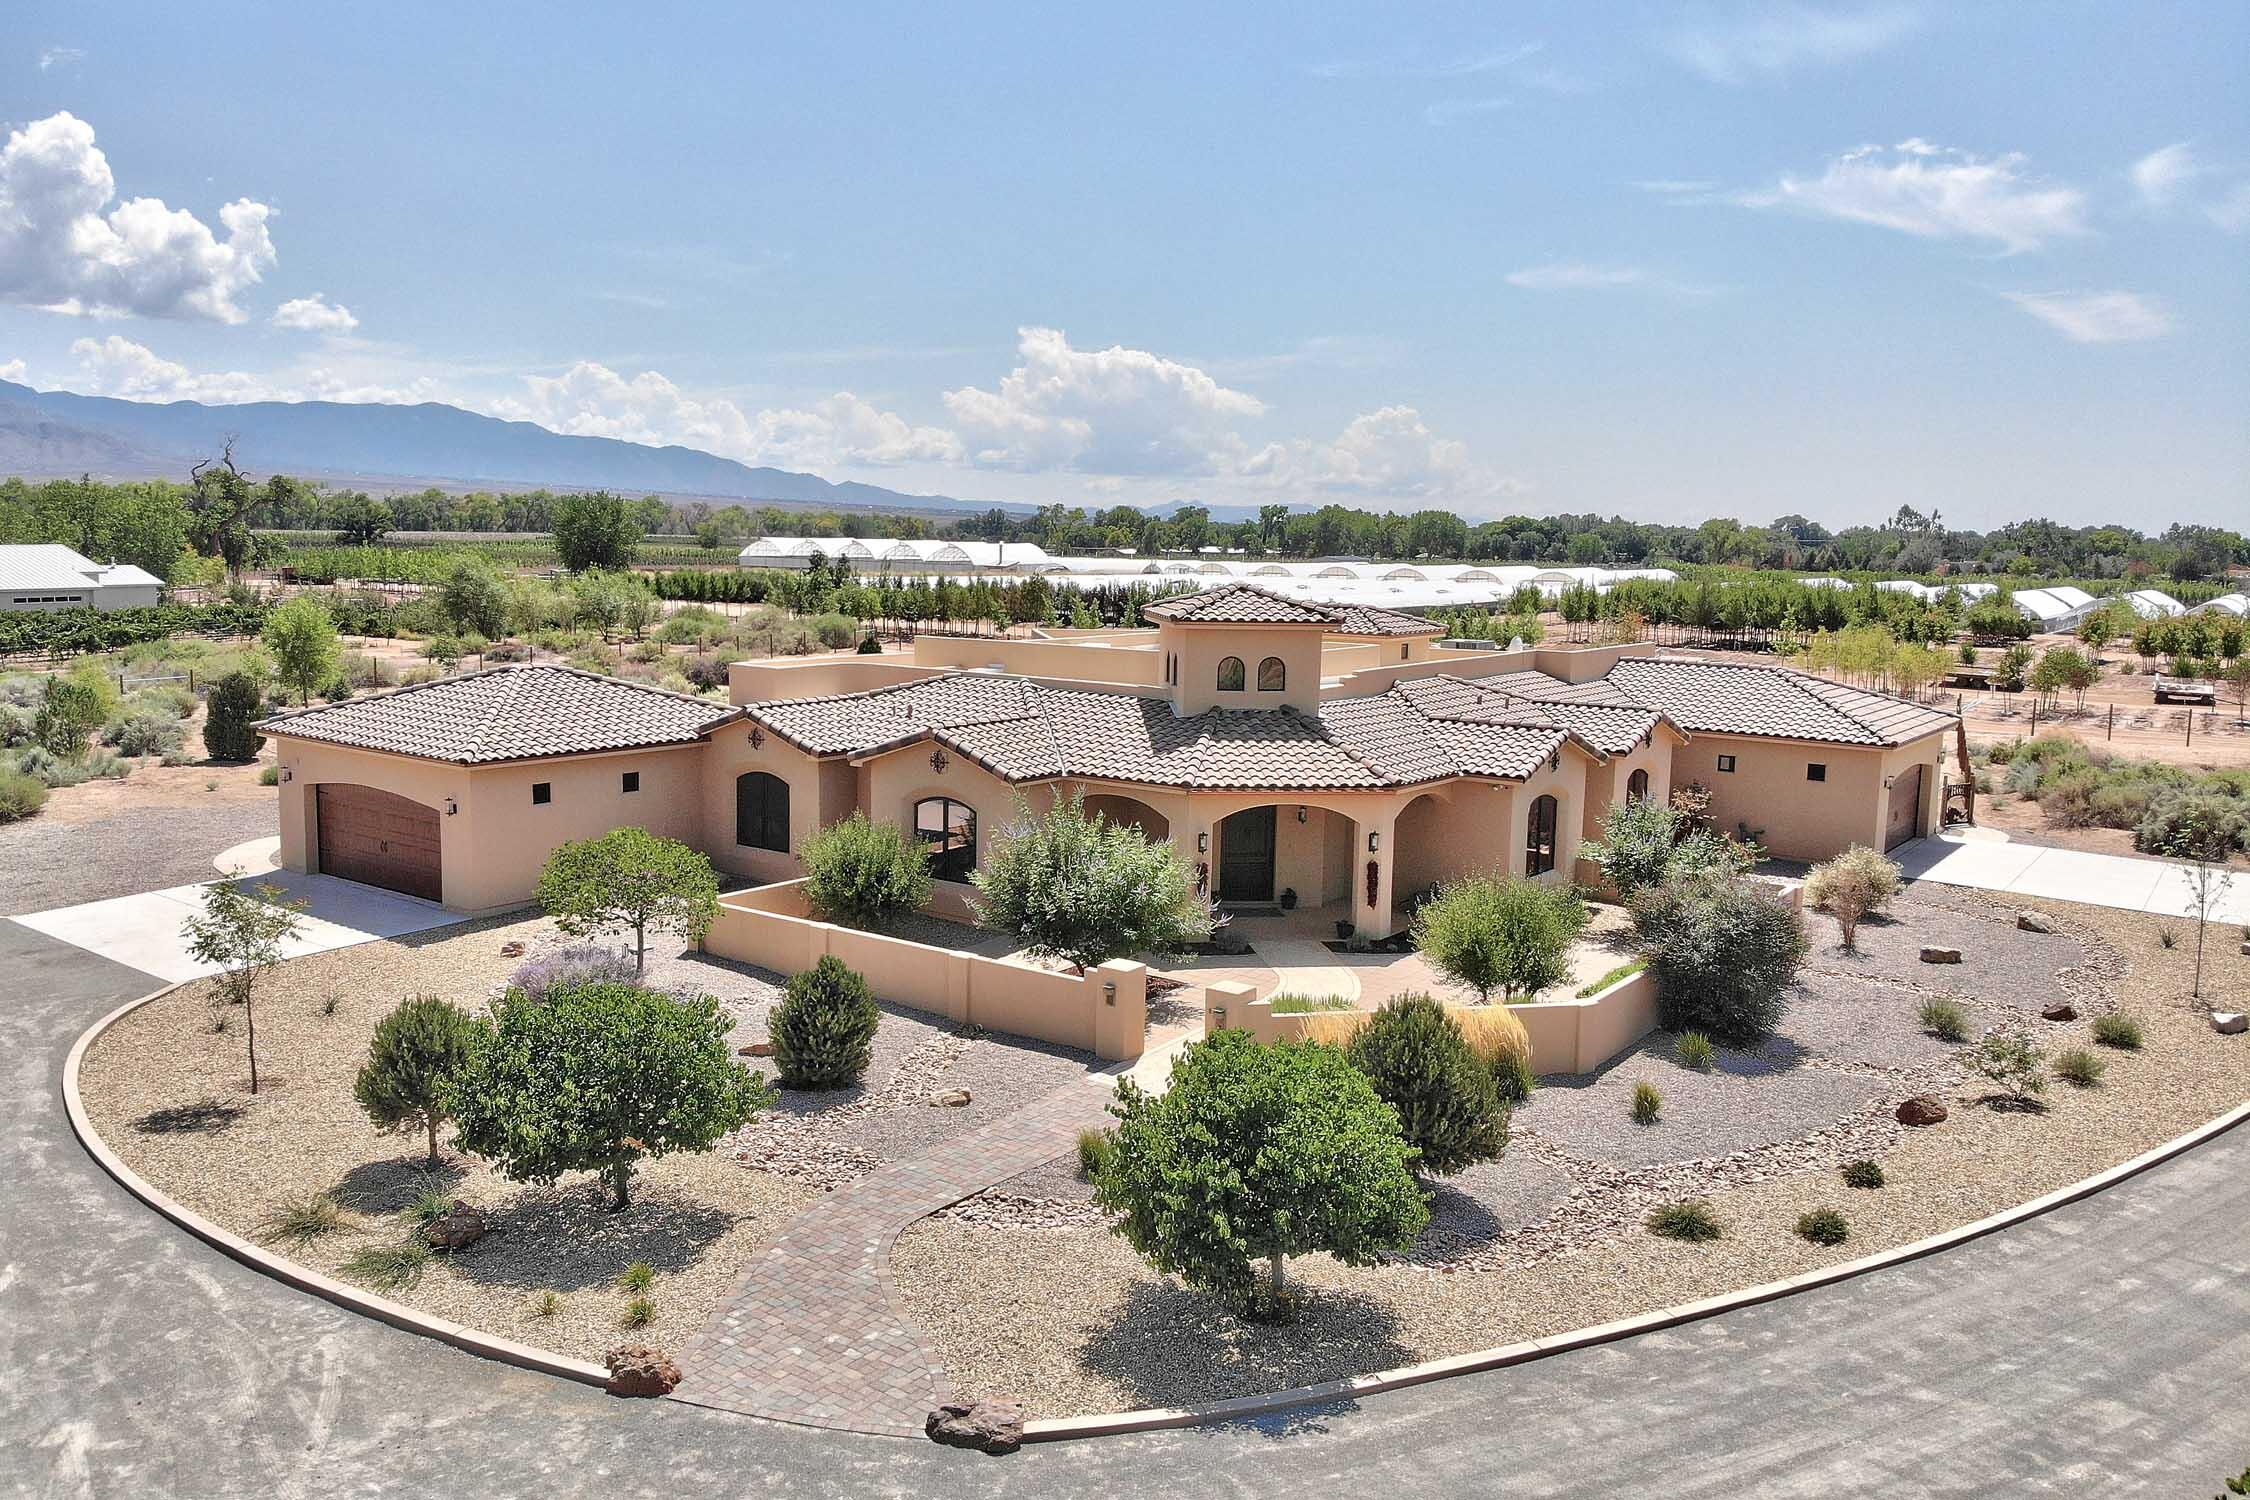 Spectacular custom home on 2+ private acres steps from the Corrales bosque w/ its miles of walking trails & cottonwood forest. Flooded w/ natural light, this luxurious property features a chef's kitchen w/ a huge granite island, walk-in pantry & state-of-the-art SS appliances that opens to a magnificent living room w/ a handcrafted stone fireplace, custom fixtures & stunning mountain views. Tavertine floors grace the interior, w/ the spa-like master in its own wing boasting his/her closets, limestone tile, snail shower & exercise room. Interior & exterior spaces are seamlessly integrated, w/ mature lush garden bursting w/ color & texture. An outdoor kitchen, 3 separate yards & a kiva fireplace make this ideal for entertaining. Close to all amenities. Corrales living at its most elegant!